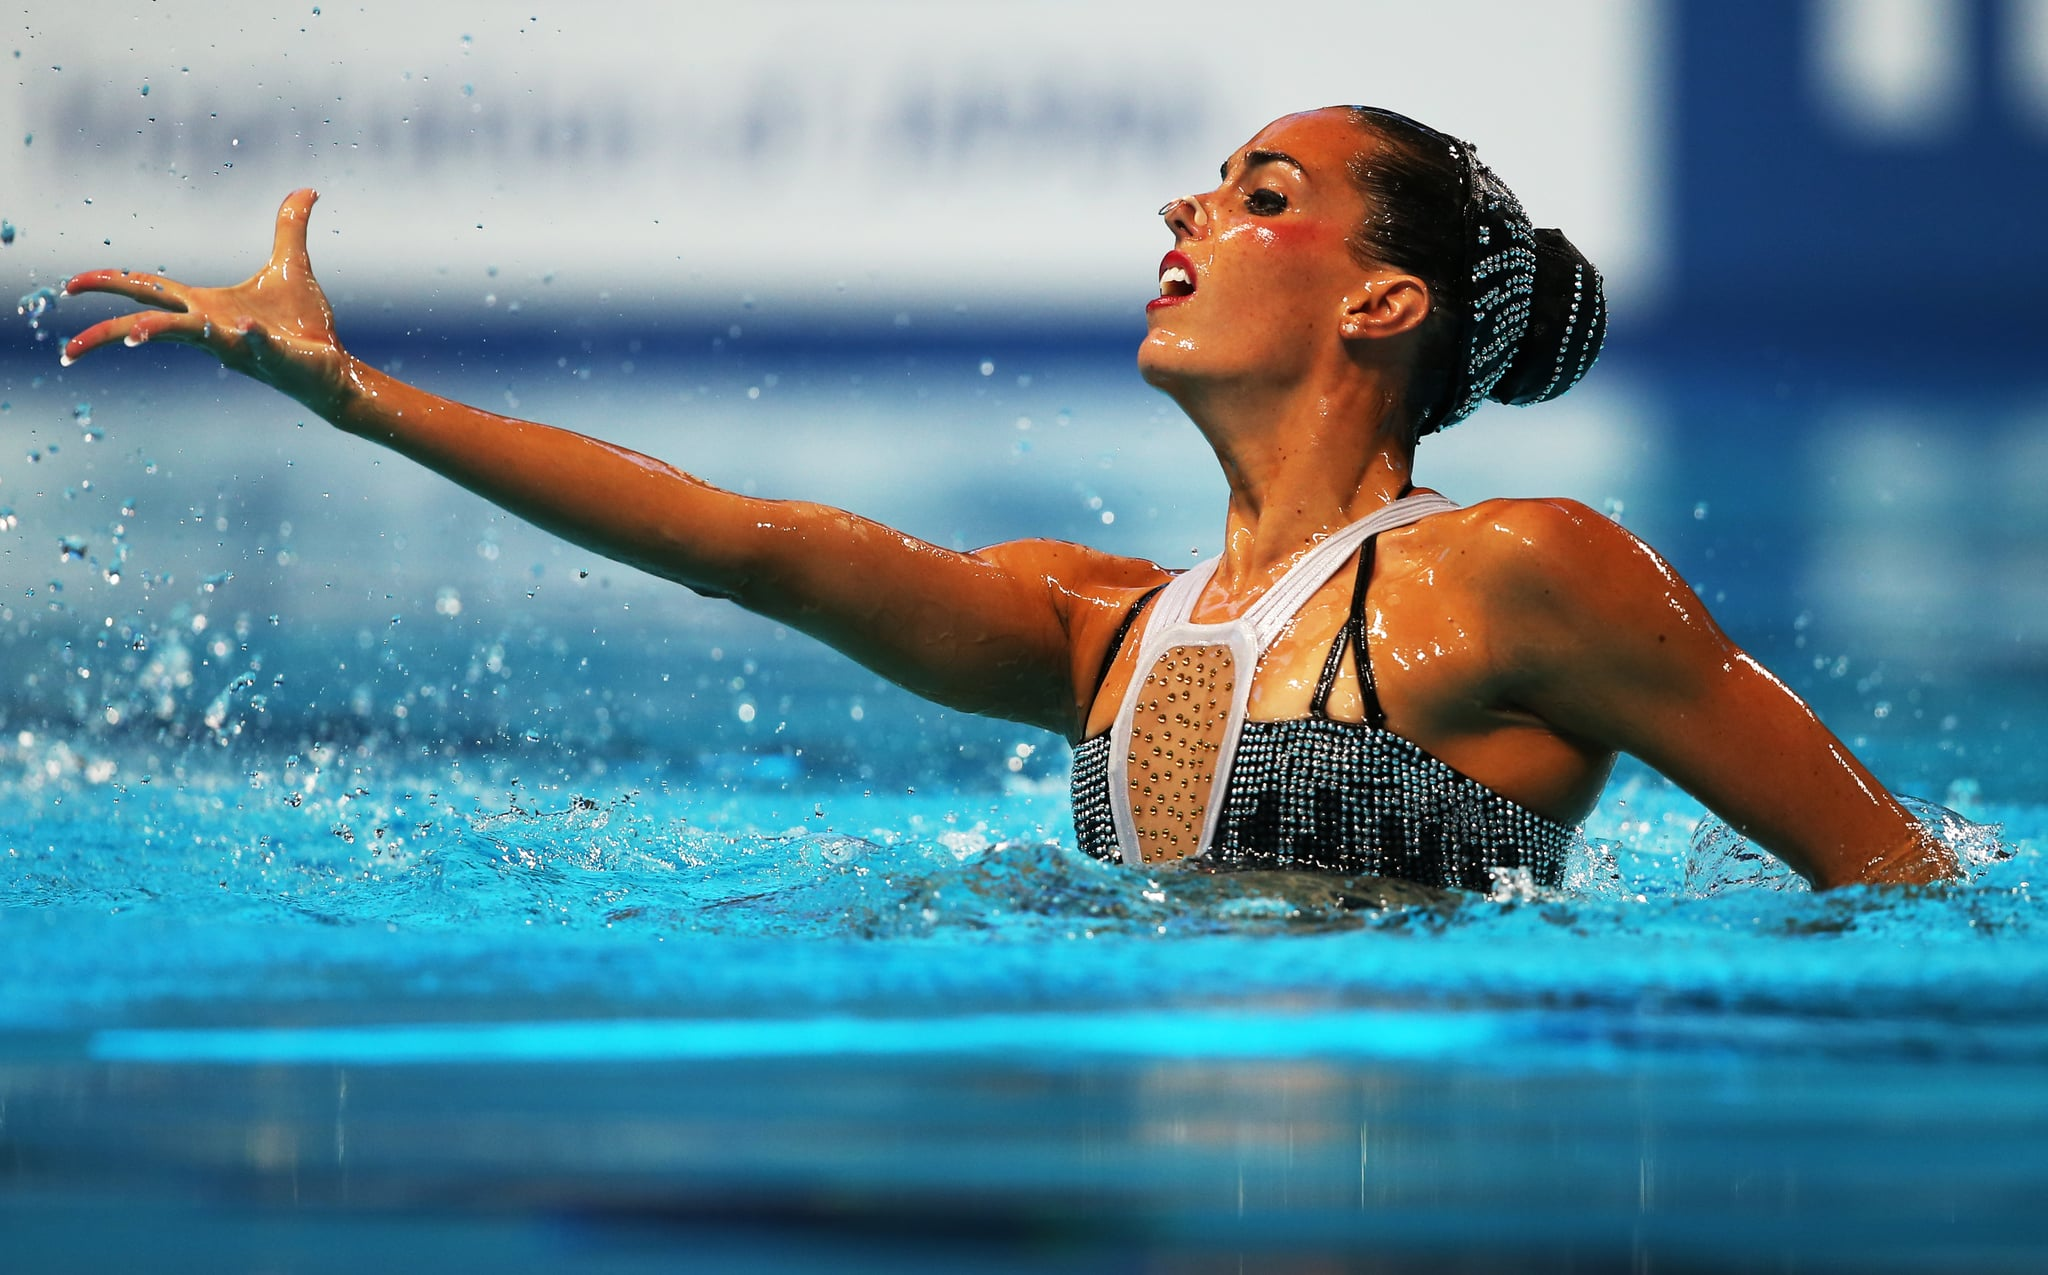 KAZAN, RUSSIA - JULY 29:  Ona Carbonell of Spain competes in the Solo Free Syncronised swimming final during day five of the 16th FINA World Aquatics Championships on July 29, 2015 at the Kazan Arena in Kazan, Russia. (Photo by Ian MacNicol/Getty Images)